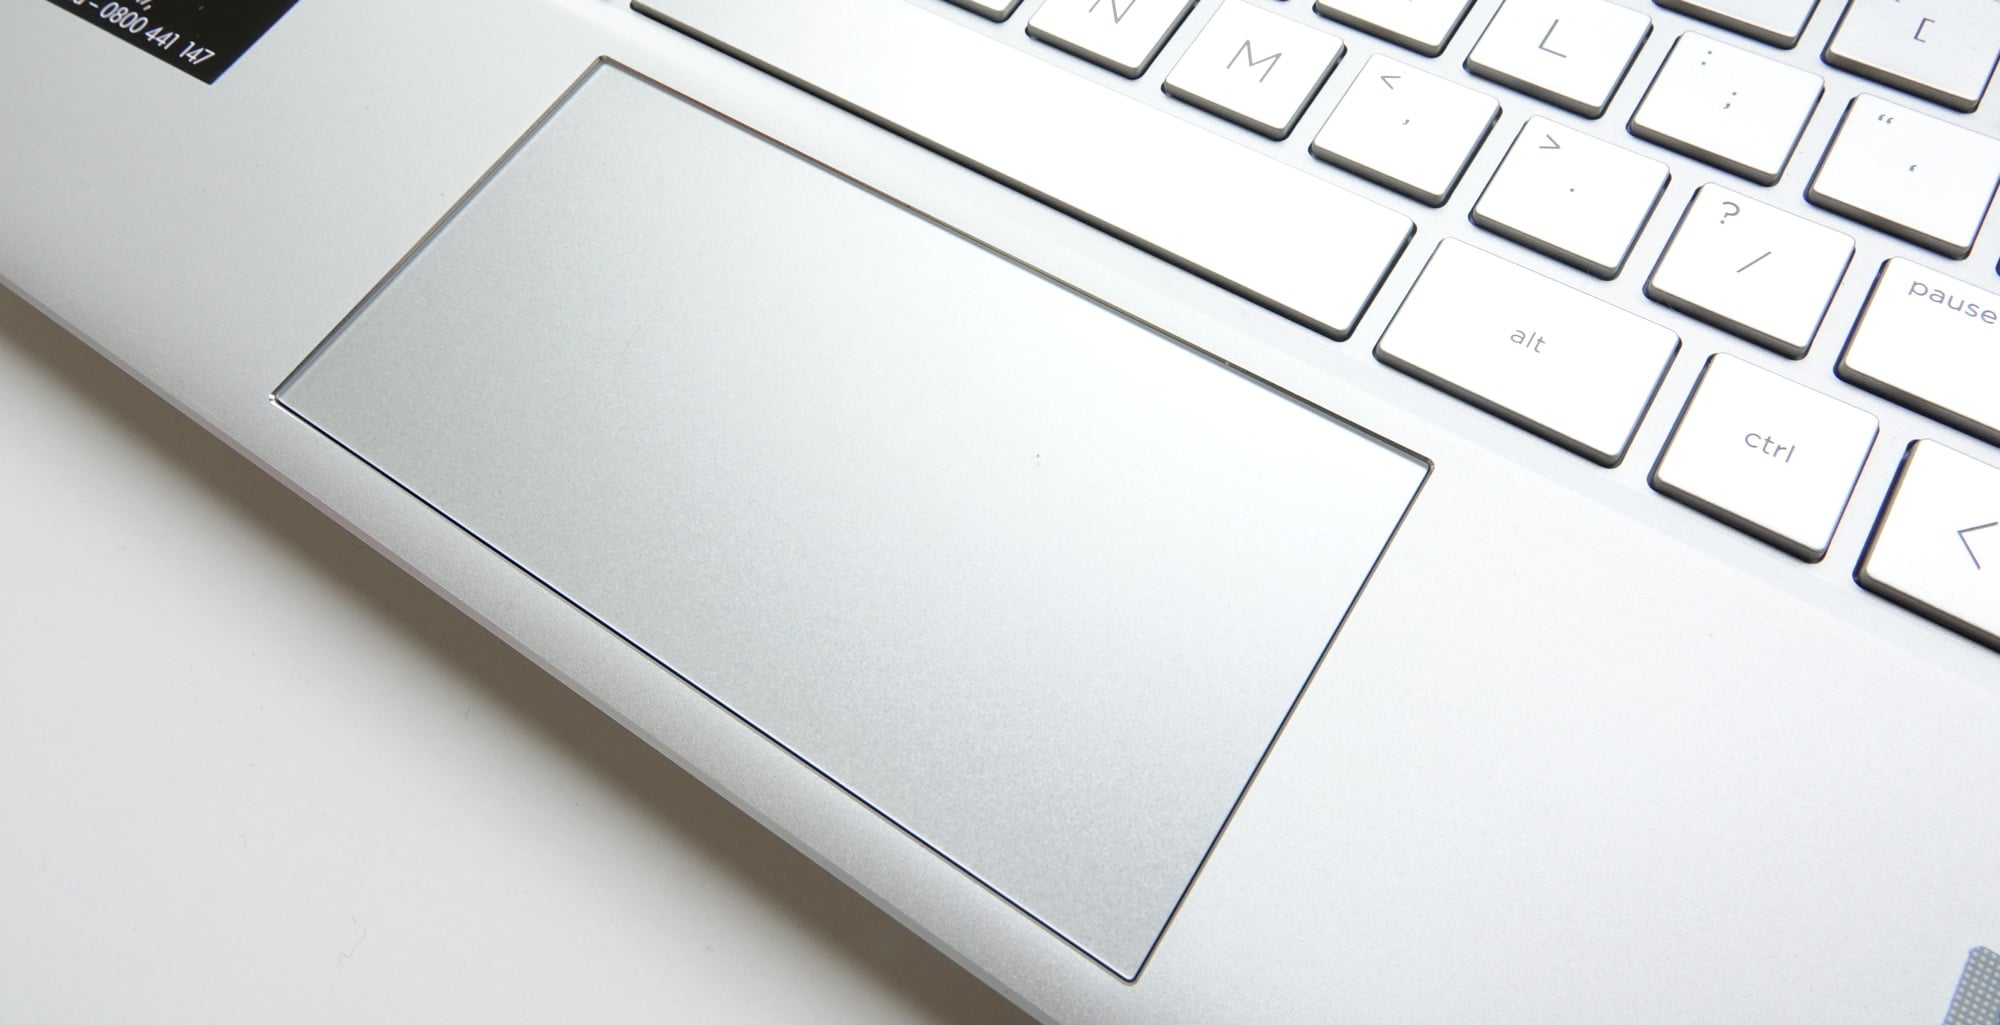 The trackpad on the x360